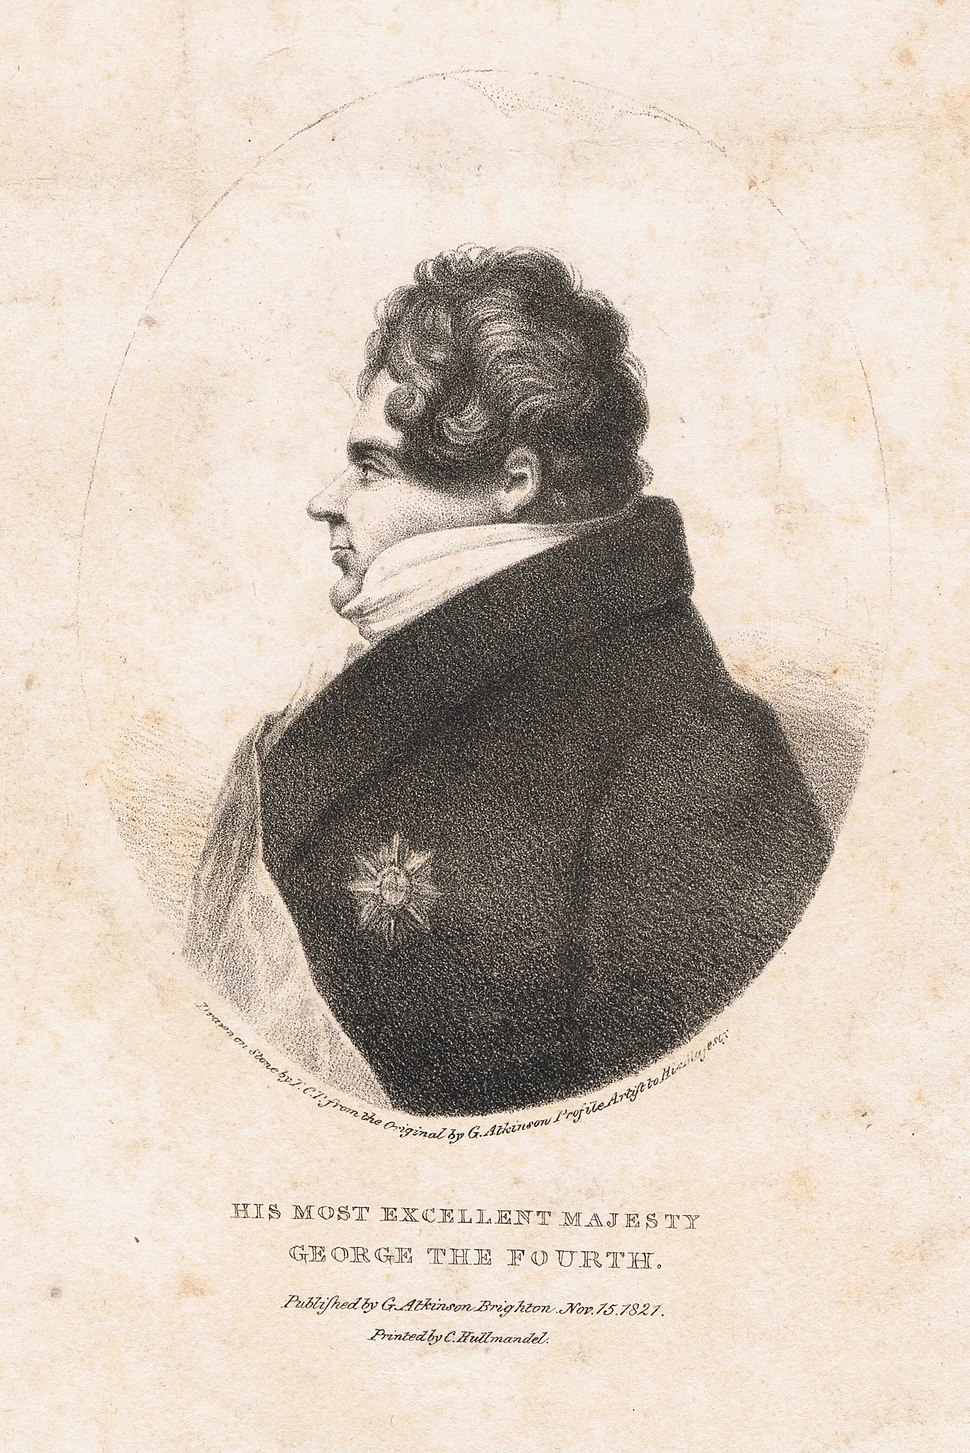 His Most Excellent Majesty George the Fourth, lithograph by T.C.P., from the original by George Atkinson, profile artist to His Majesty, printed by C. Hullmandel, published by G. Atkinson, Brighton, November 15, 1821